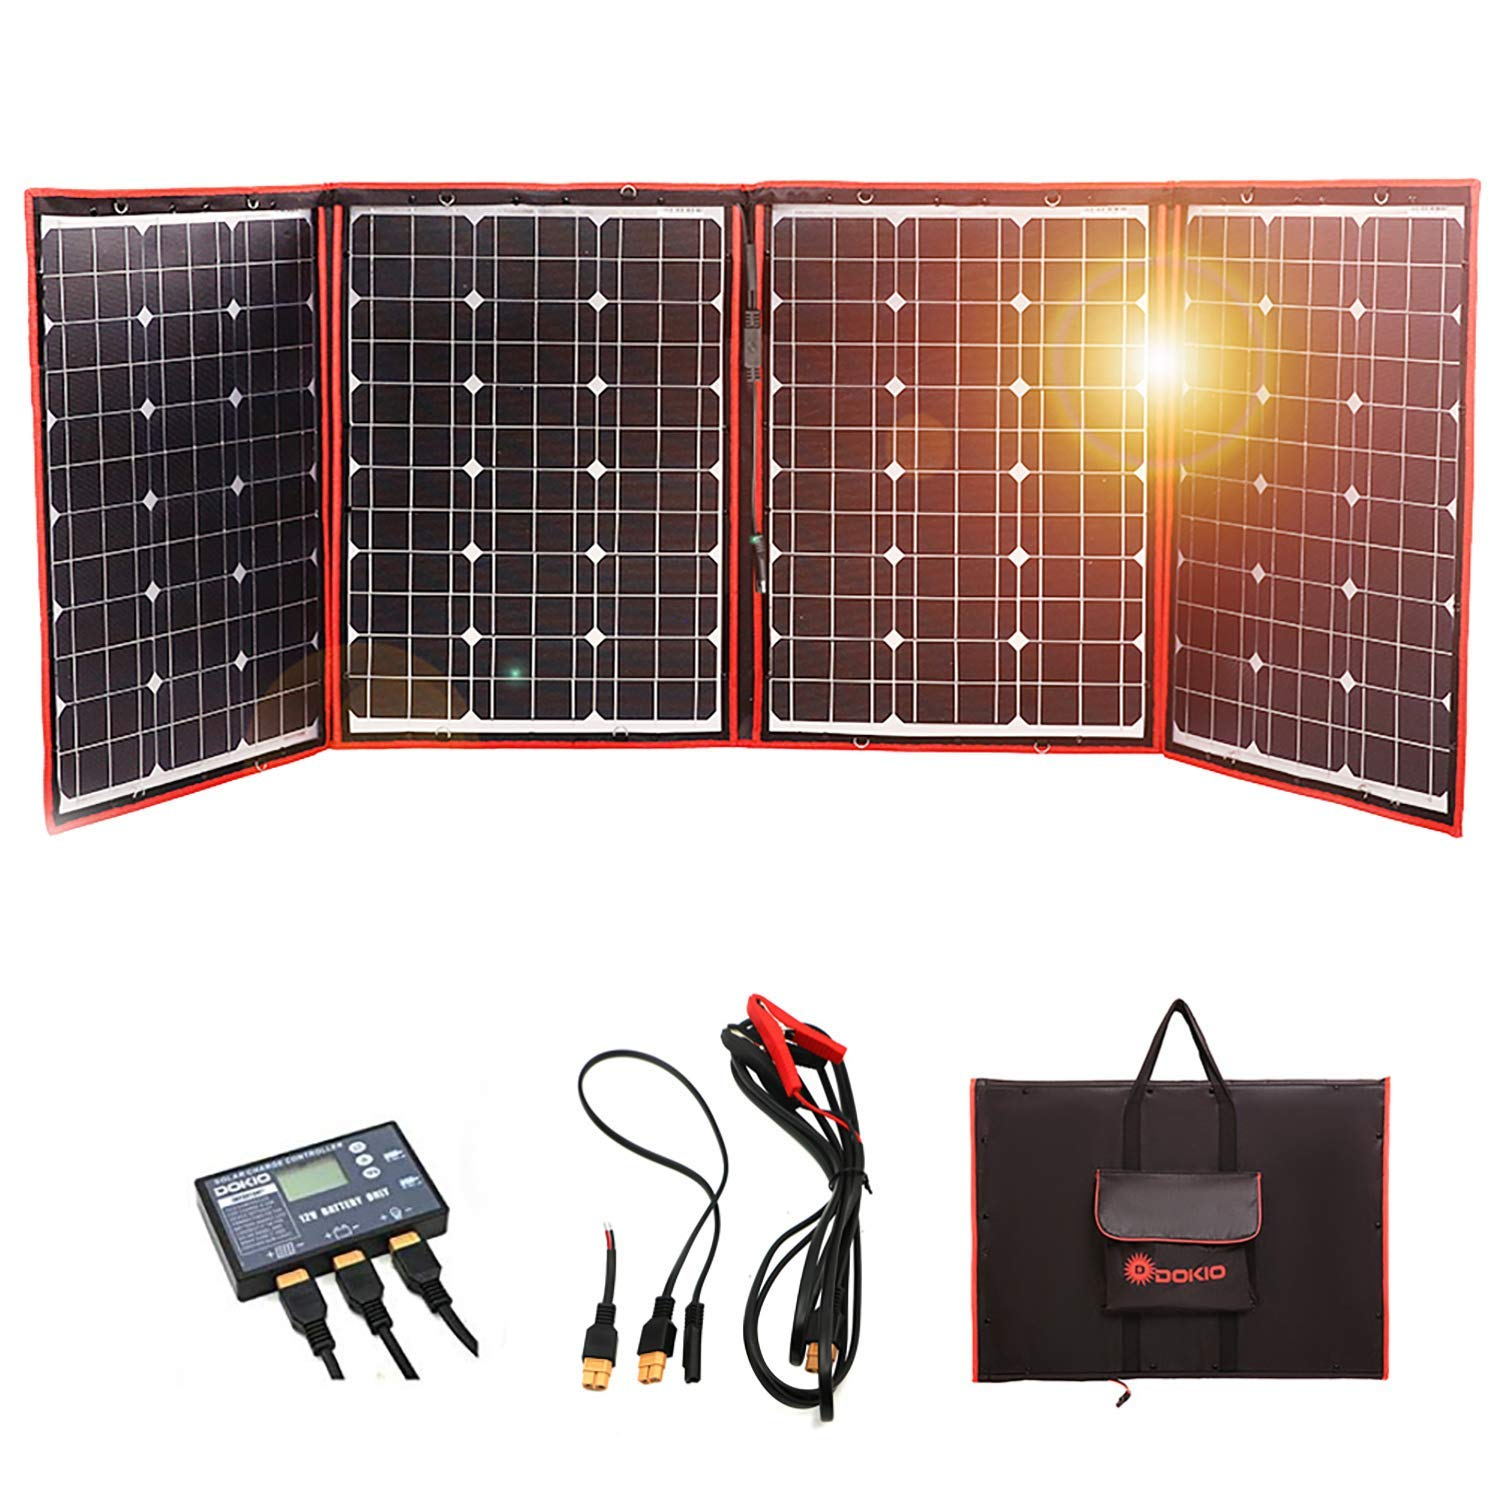 DOKIO 220 Watts 12 Volts Monocrystalline Foldable Solar Panel with Charge Controller by DOKIO